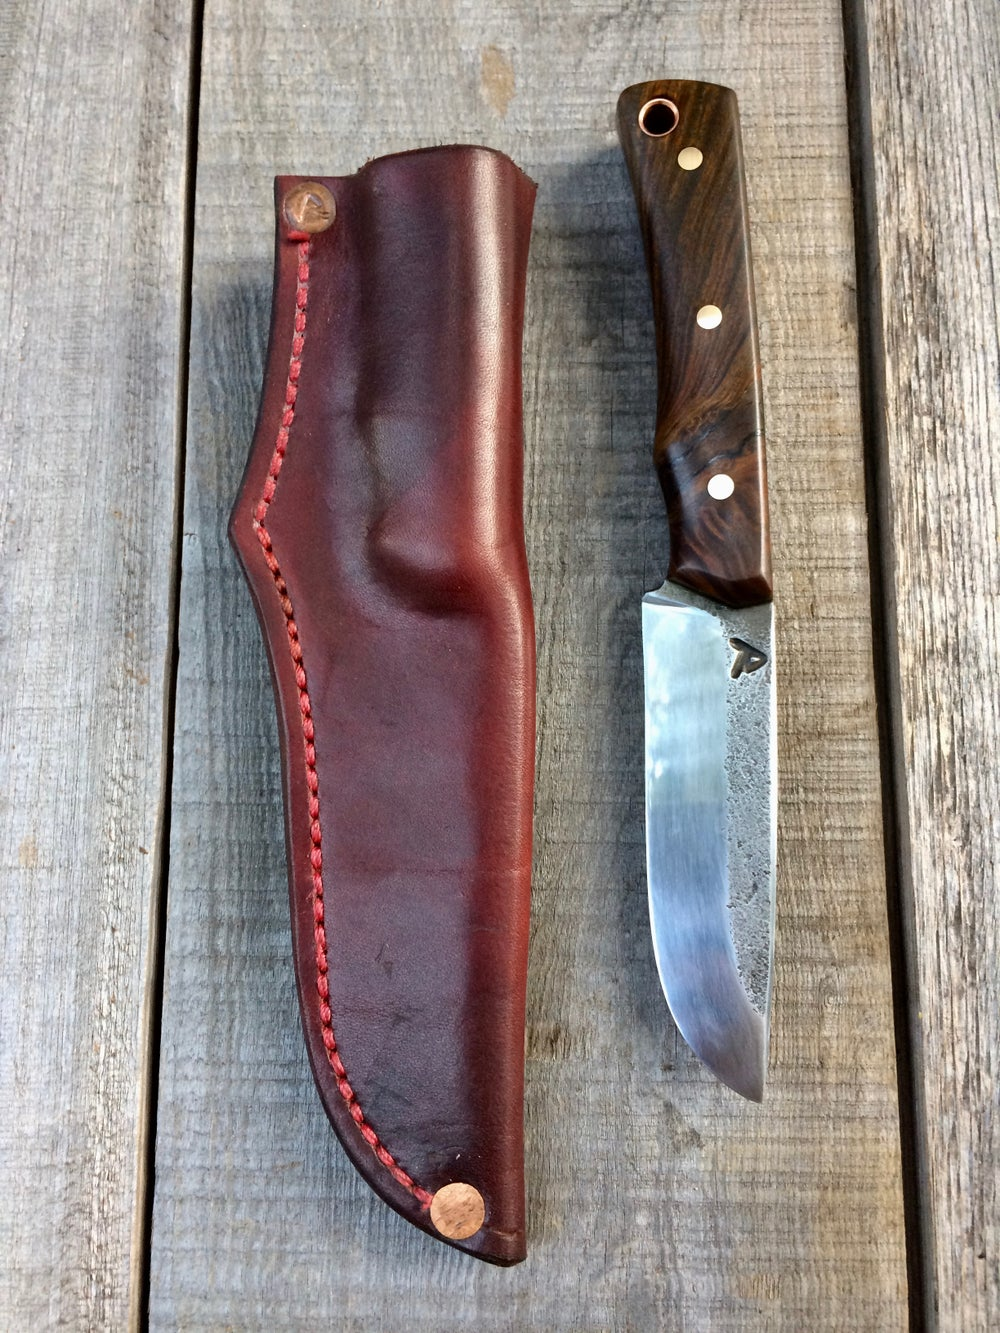 Image of CPM 3V Scandinavian style Skinner w/ Argentine Lignum Vitae Handle and Leather Sheath